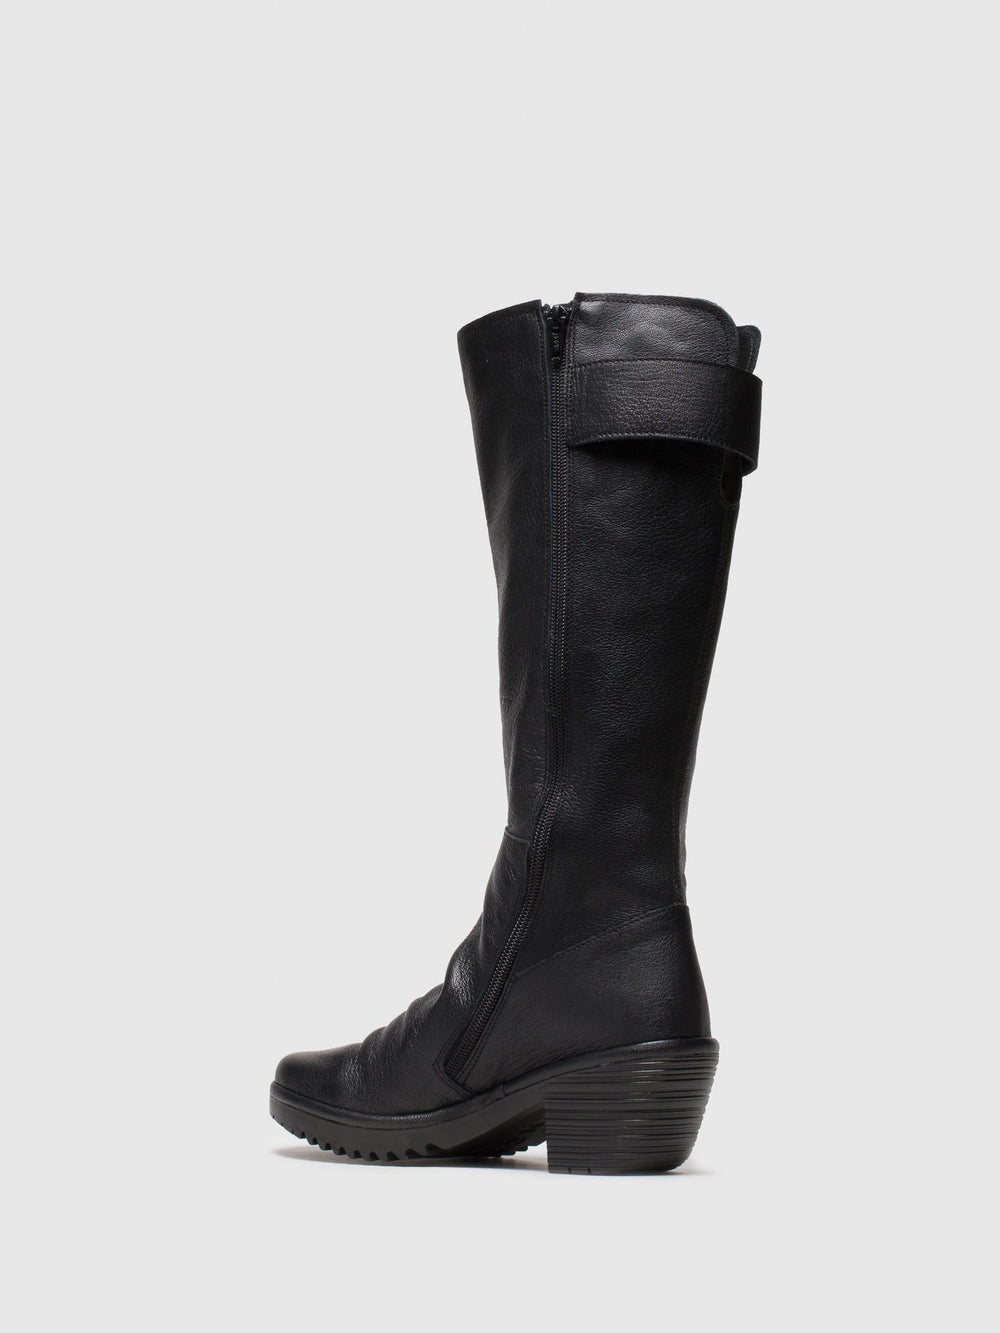 Zip Up Boots WAKI085FLY BLACK